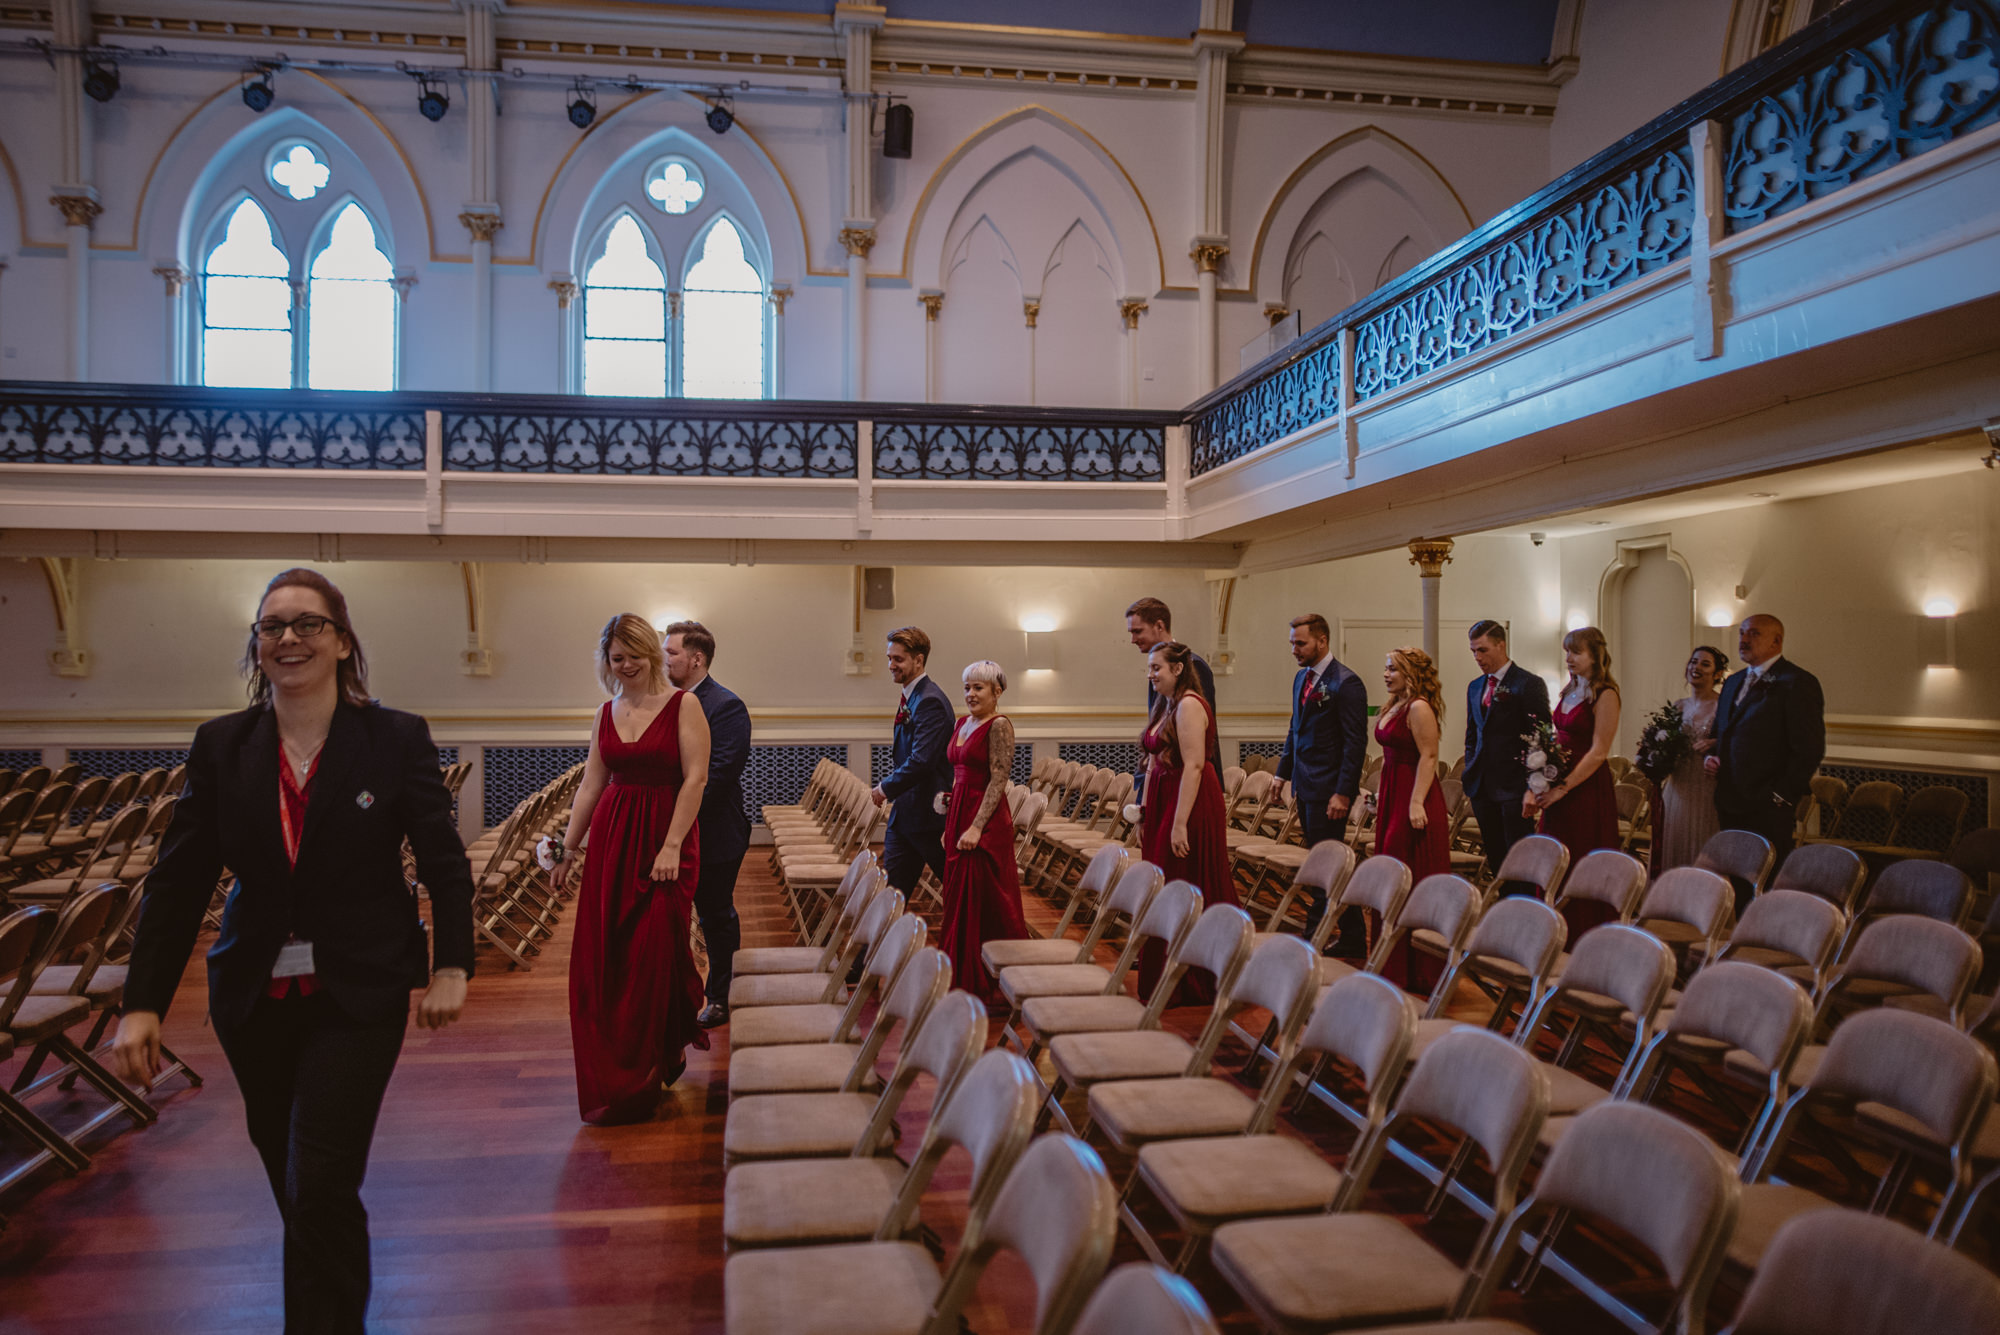 Marissa-and-Ash-Wedding-at-Winchester-Guildhall-and-The-Meade-Hall-Hampshire-Manu-Mendoza-Wedding-Photography-246.jpg